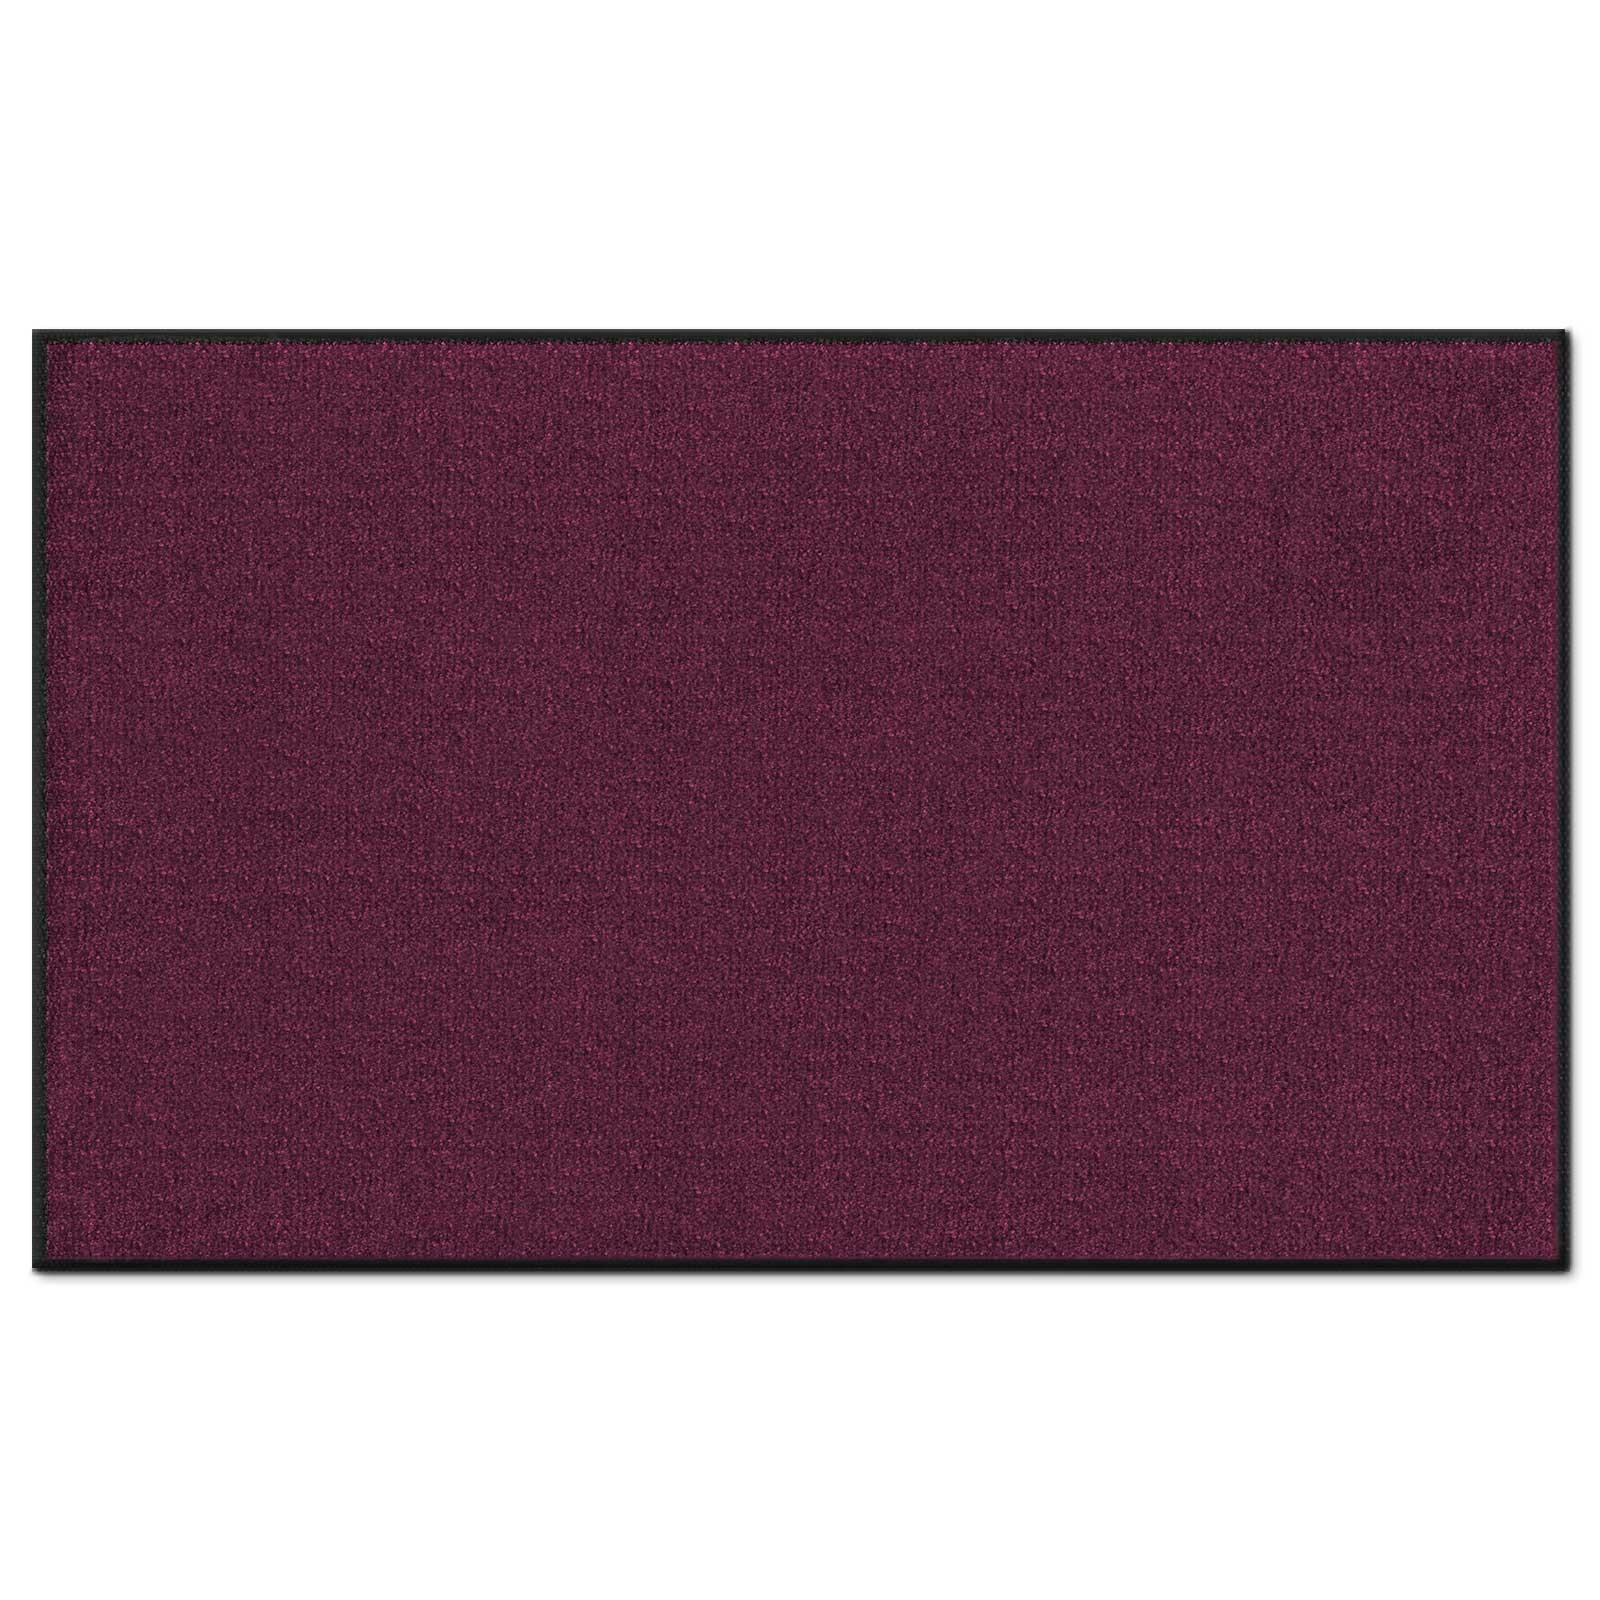 Tapis Rond Aubergine Fly Tapis Rond